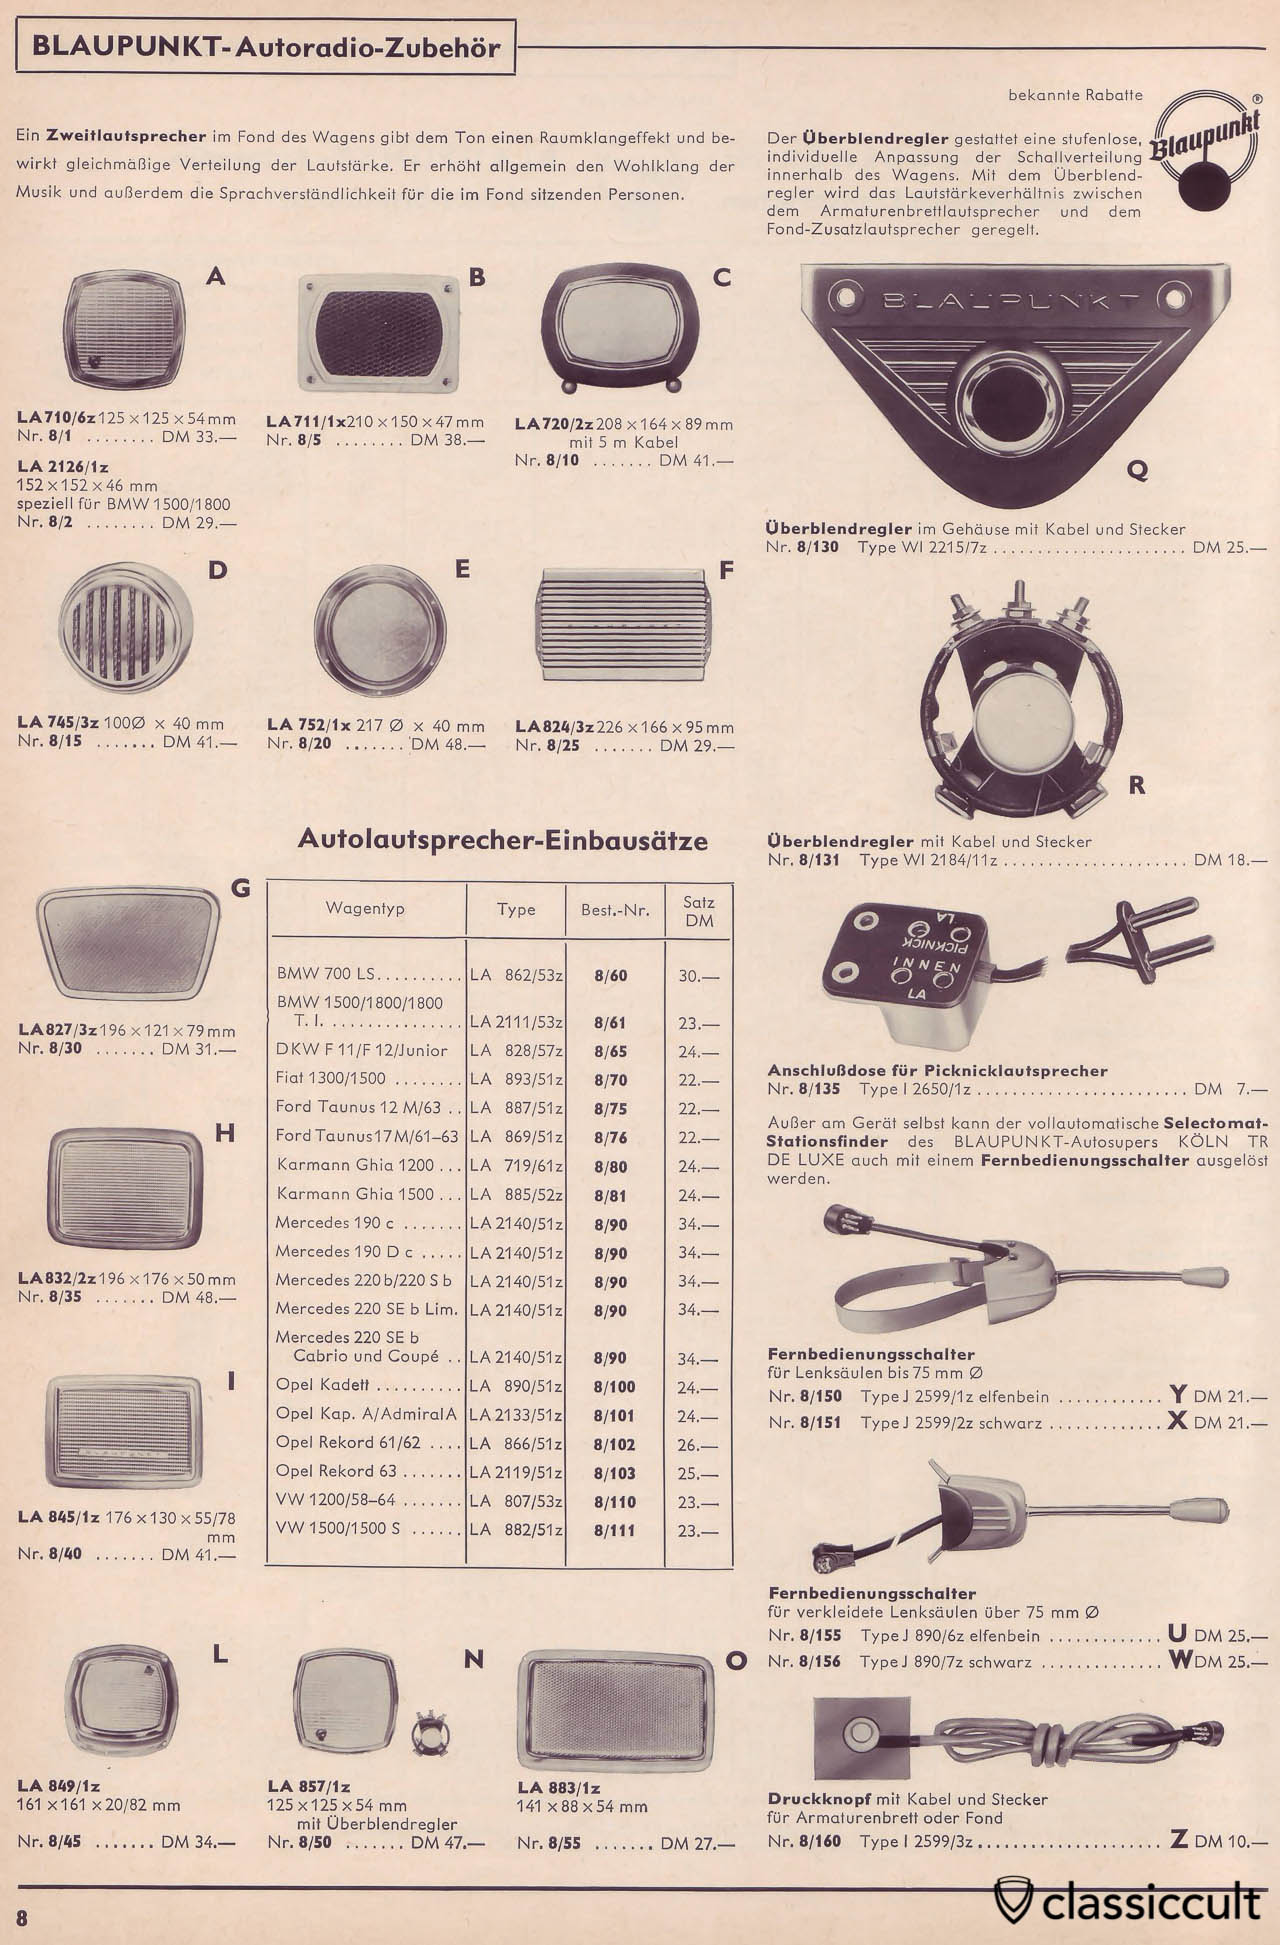 Blaupunkt Picnic Speaker Connector in Car Radio Accessories Catalog 1965